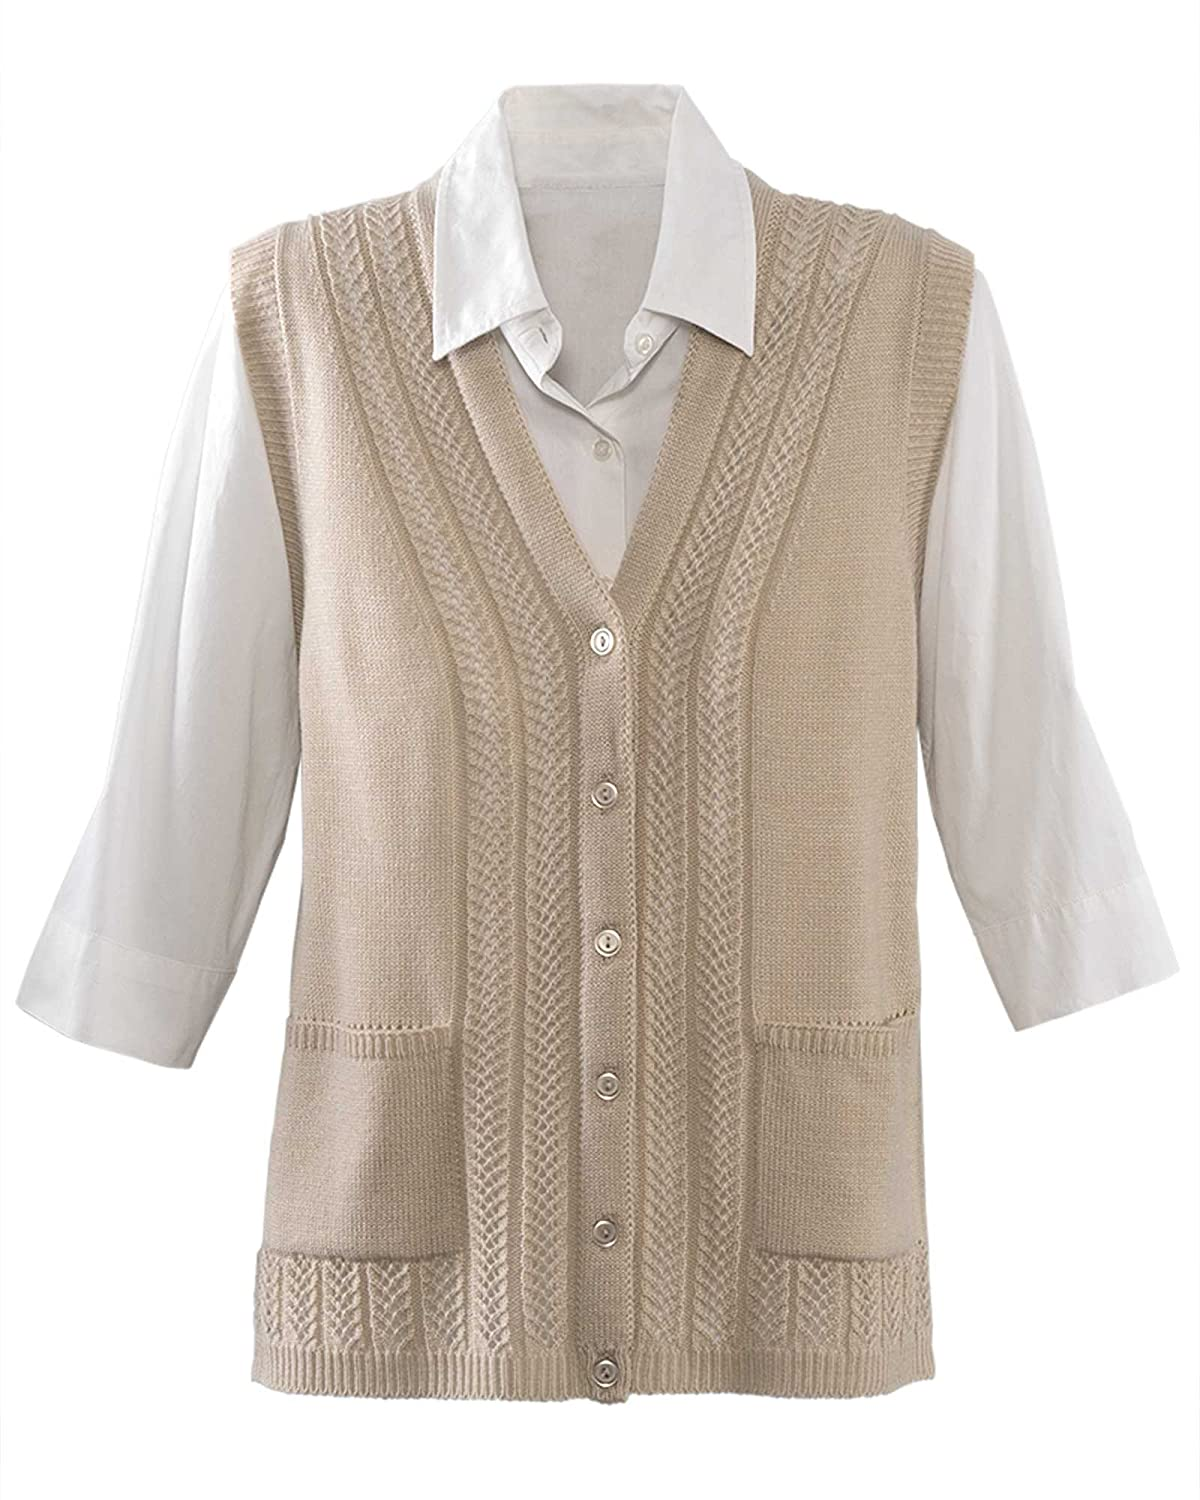 1950s Sweaters, 50s Cardigans, Twin Sweater Sets National Classic Sweater Vest $34.95 AT vintagedancer.com